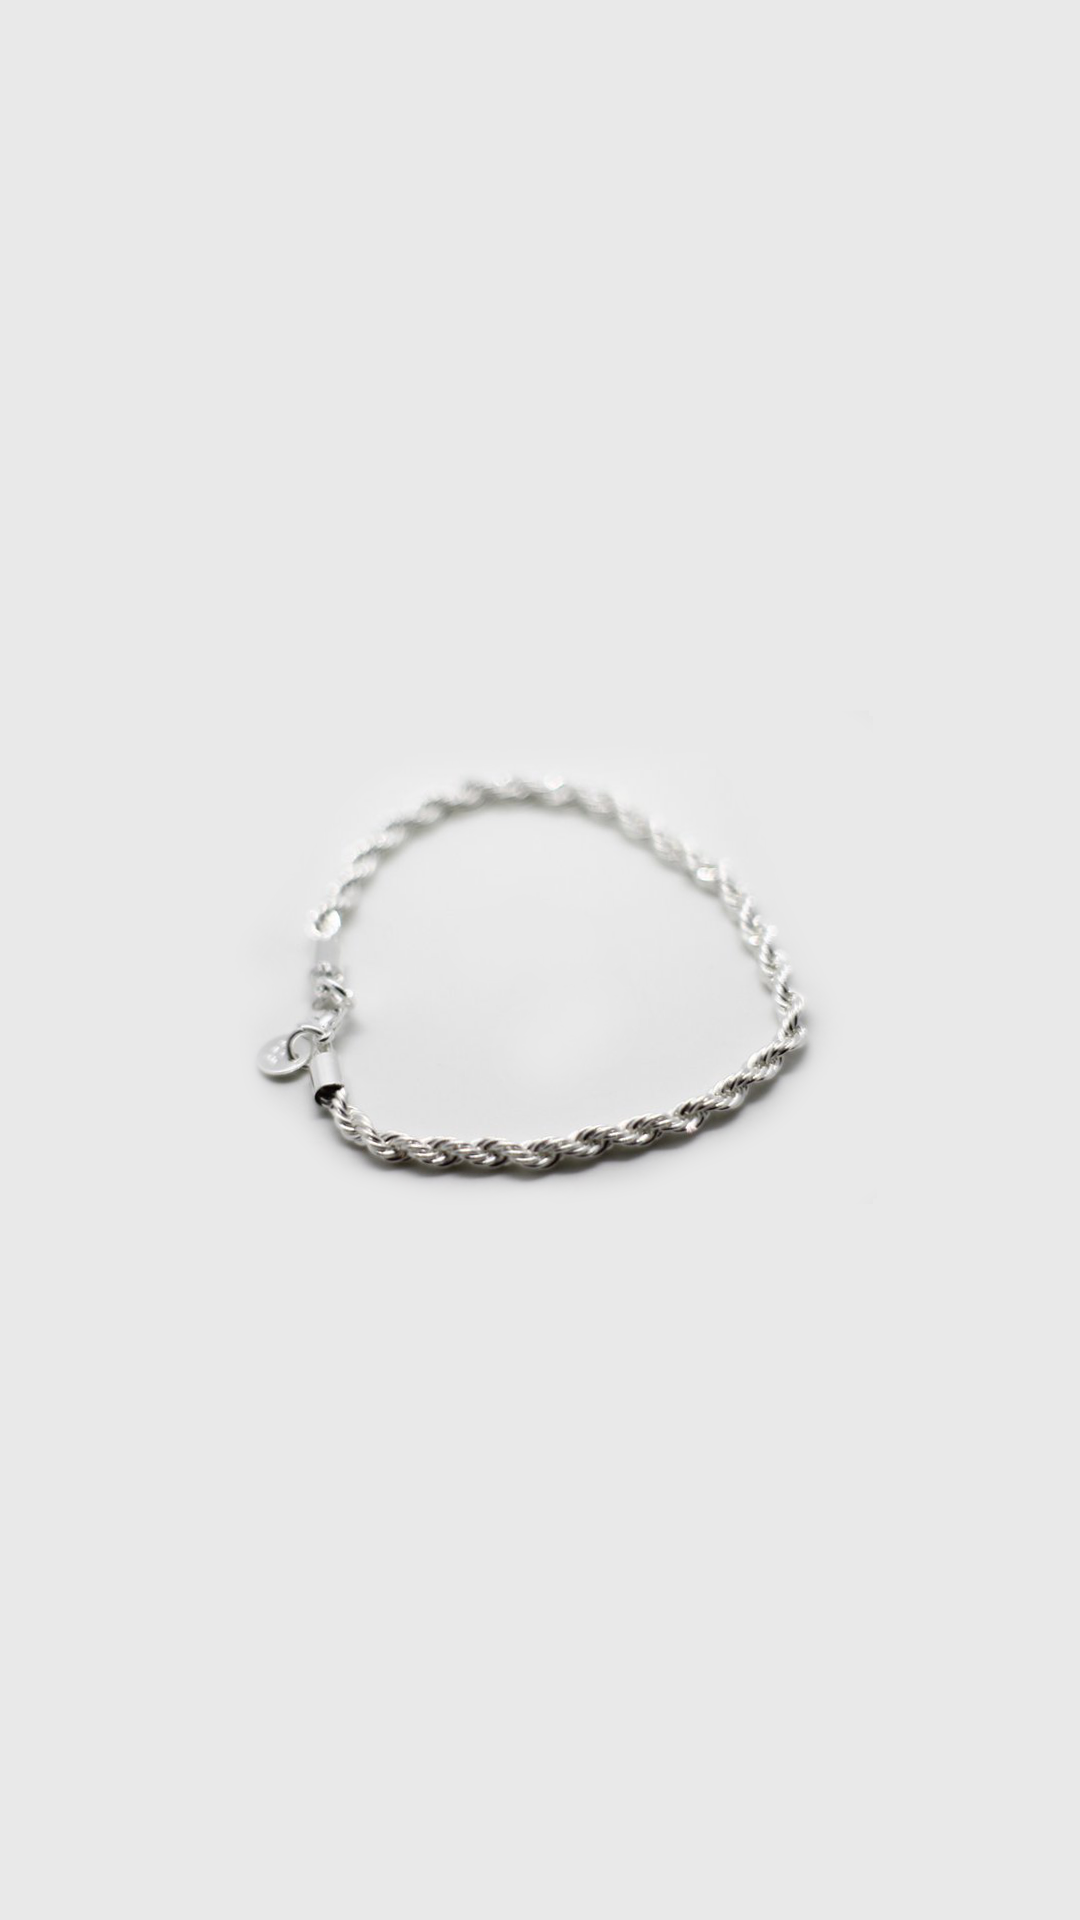 Image of 925 Sterling Silver Bracelet